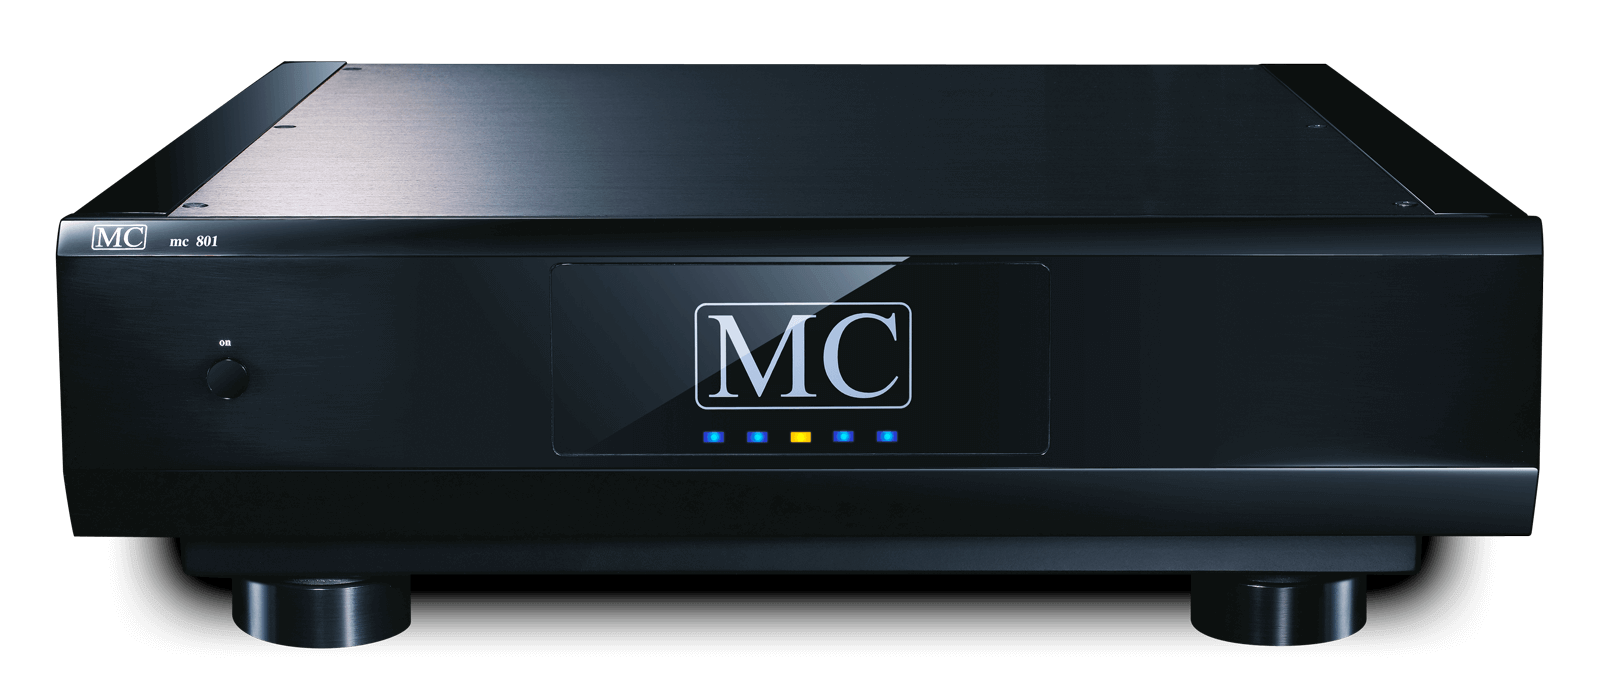 mc 801 power amplifier mc music culture technology hifi made in germany. Black Bedroom Furniture Sets. Home Design Ideas